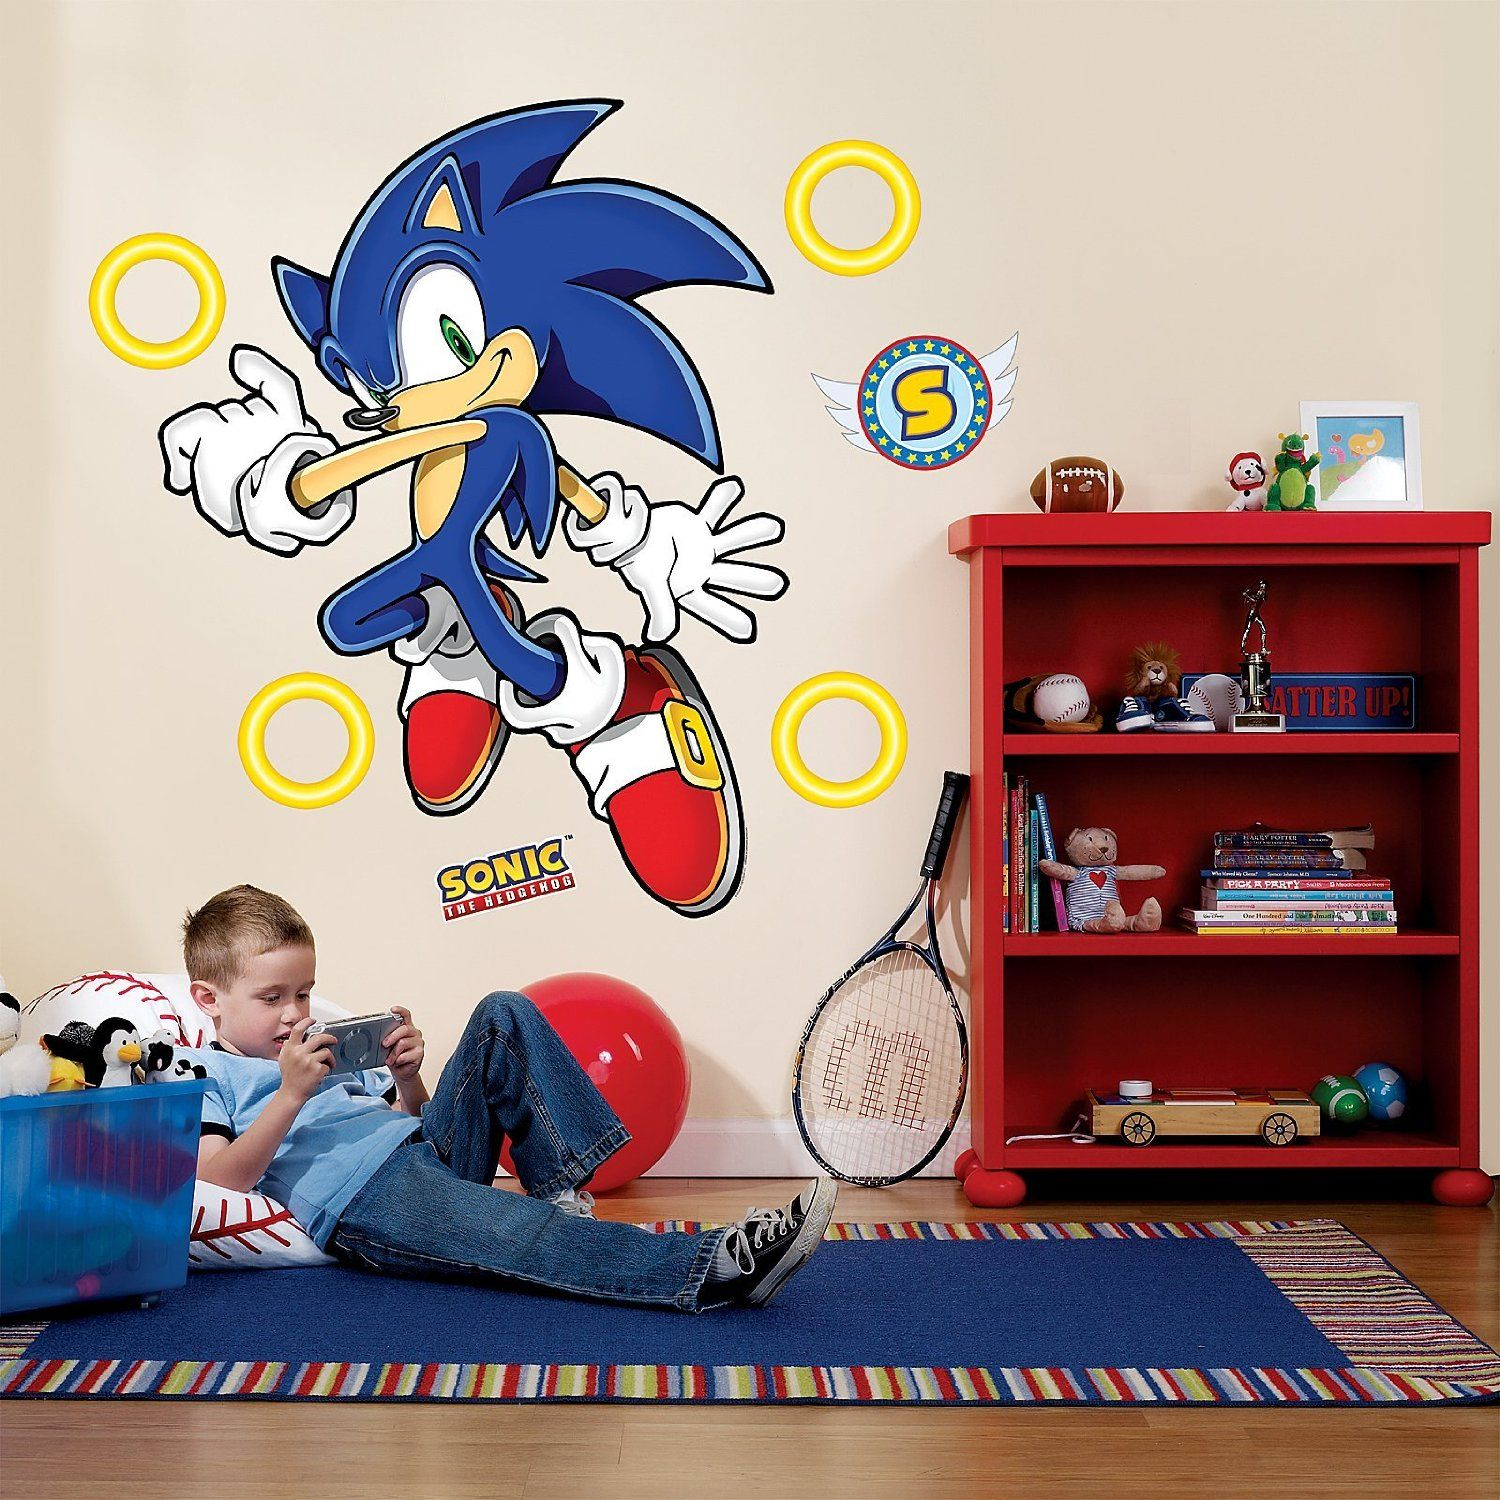 Sonic The Hedgehog Decor For Bedroom